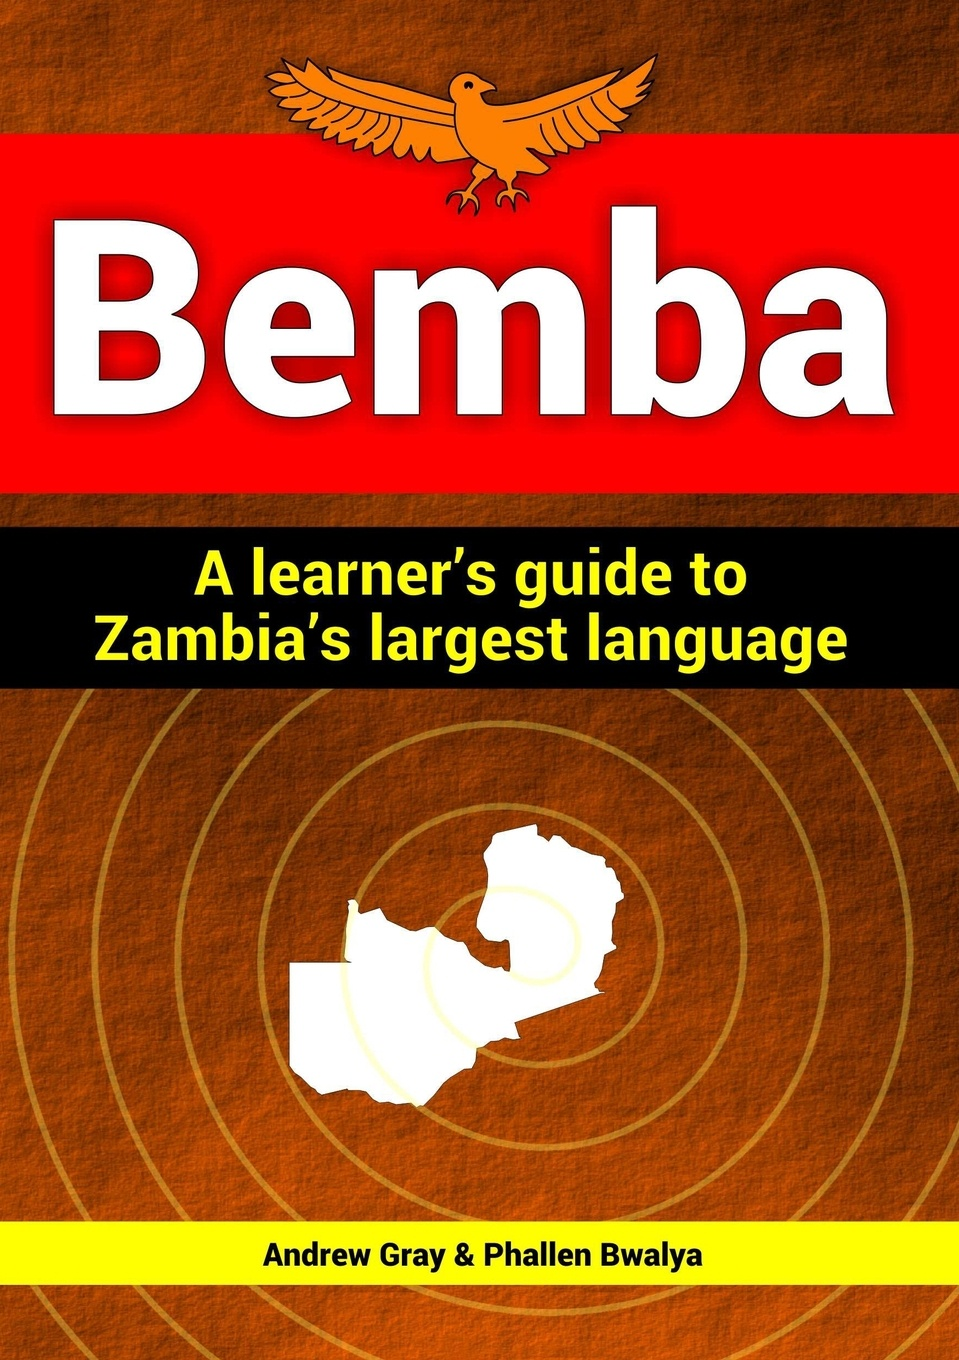 Фото - Andrew Gray, Phallen Bwalya Bemba. a learner's guide to Zambia's largest language paul fletcher language development and language impairment a problem based introduction